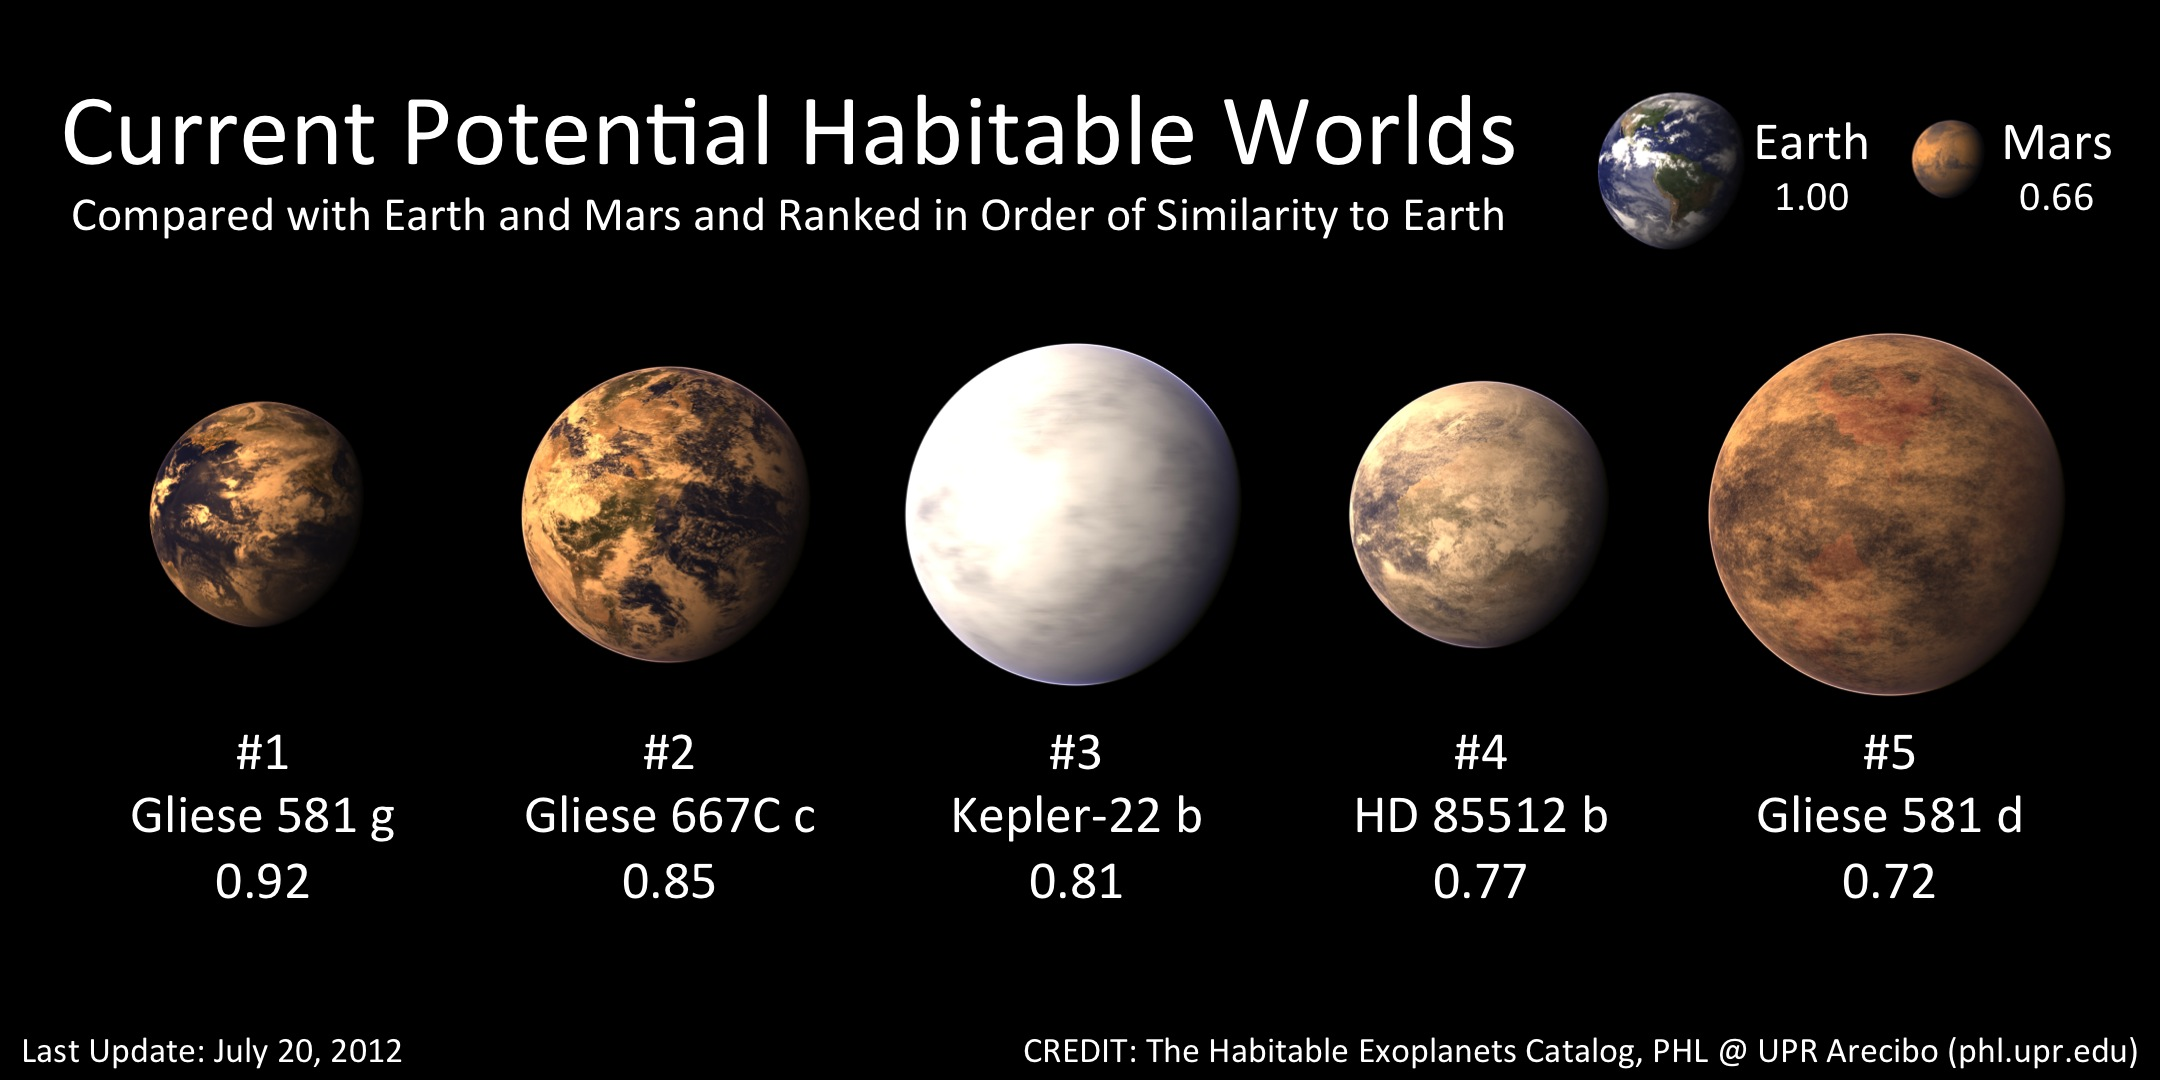 Gliese 581 G habitable